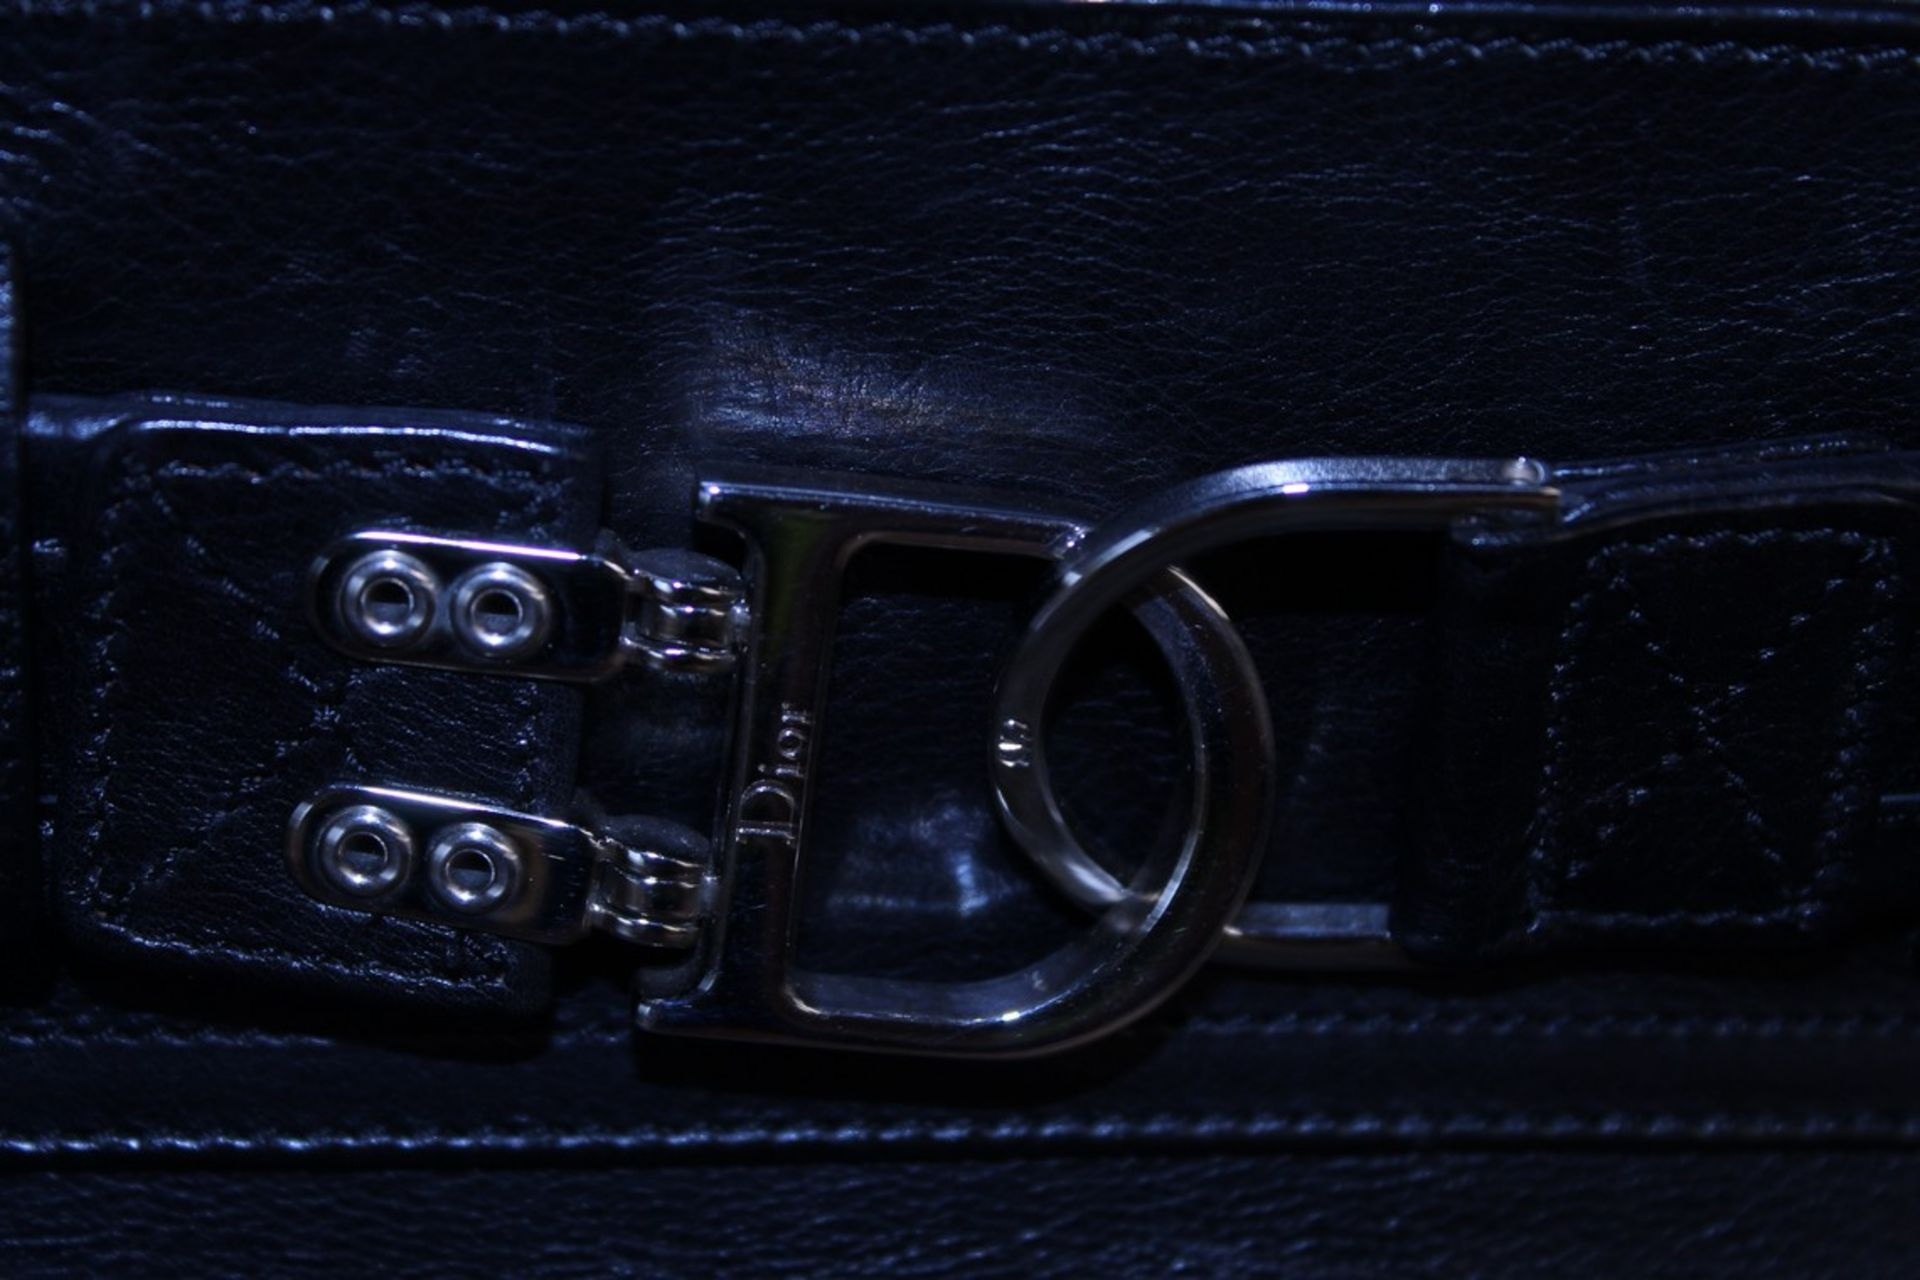 RRP £1300 Dior Interlocking D Belt Handbag In Black Calf Leather With Black Leather Handles. ( - Image 4 of 6